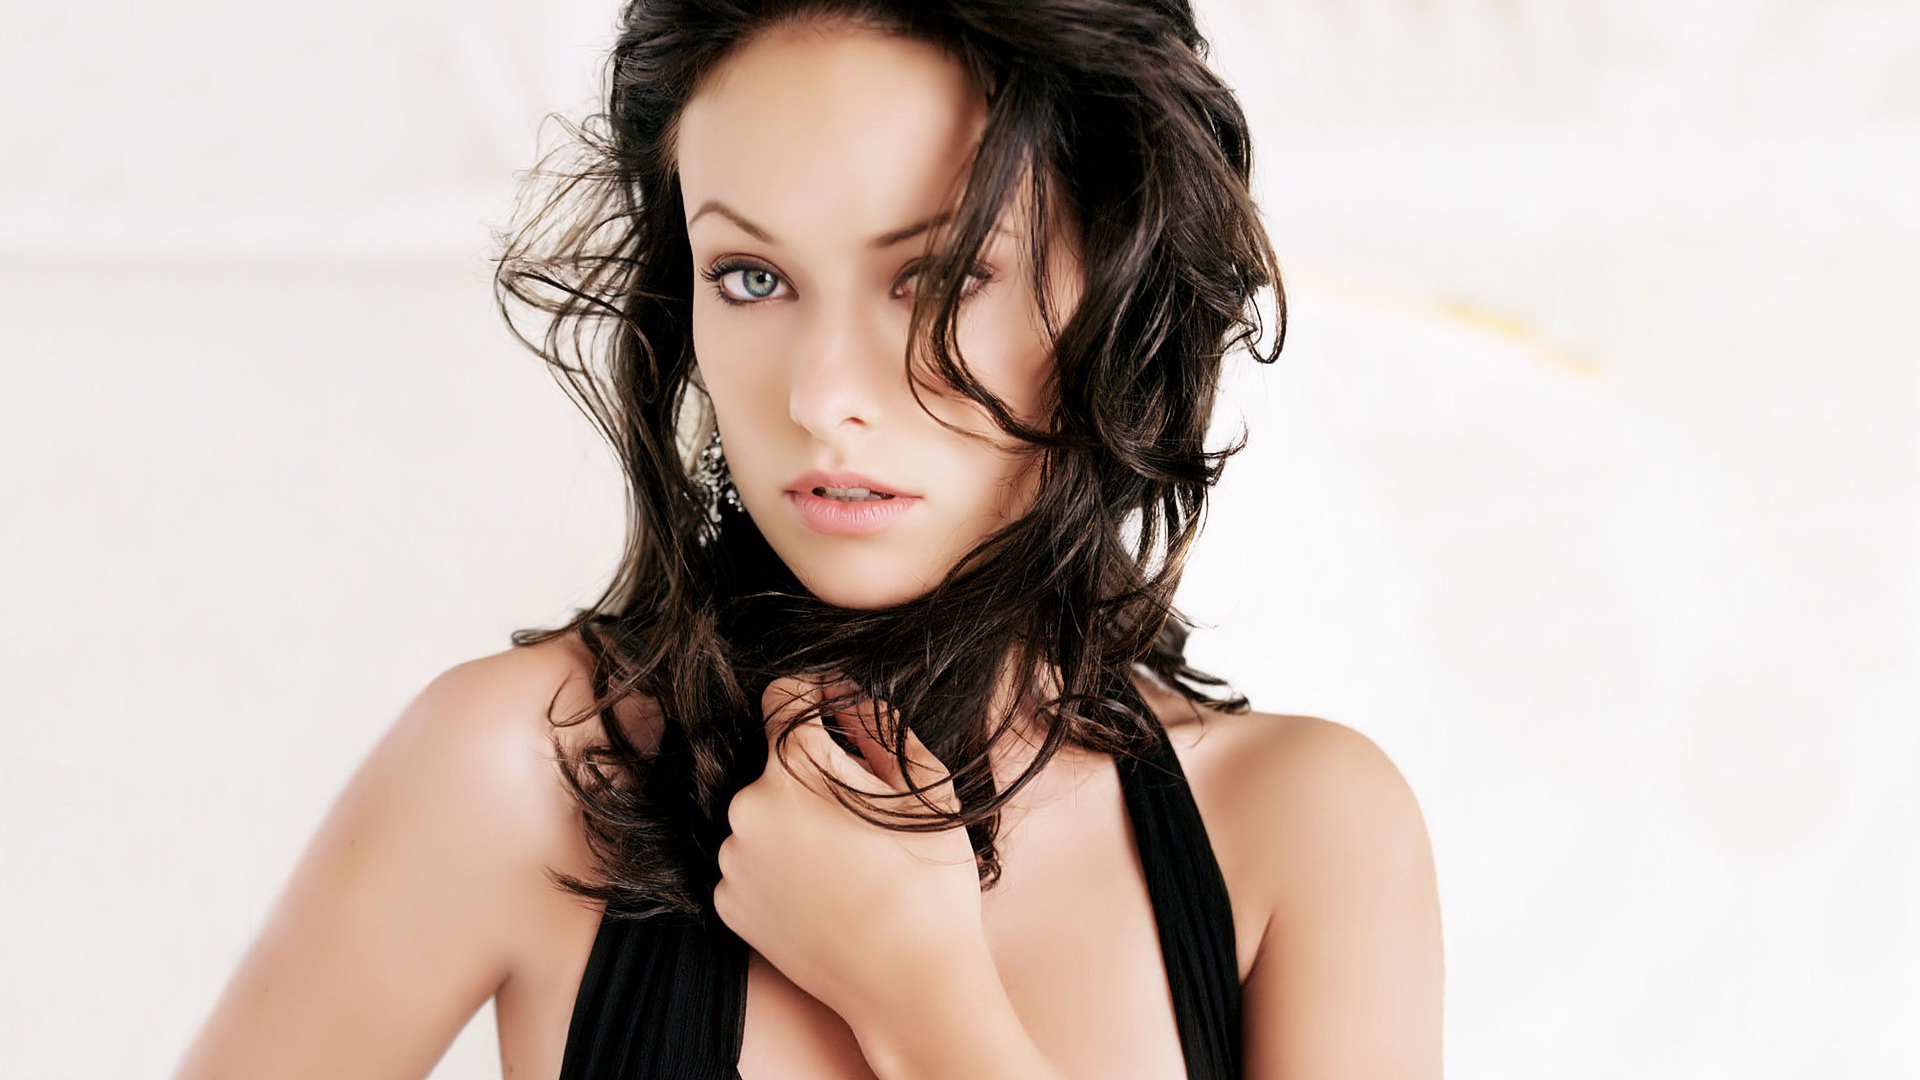 Olivia Wilde HD Wallpaper 1920x1080 Olivia PlusPng.com  - Celebrities HD PNG